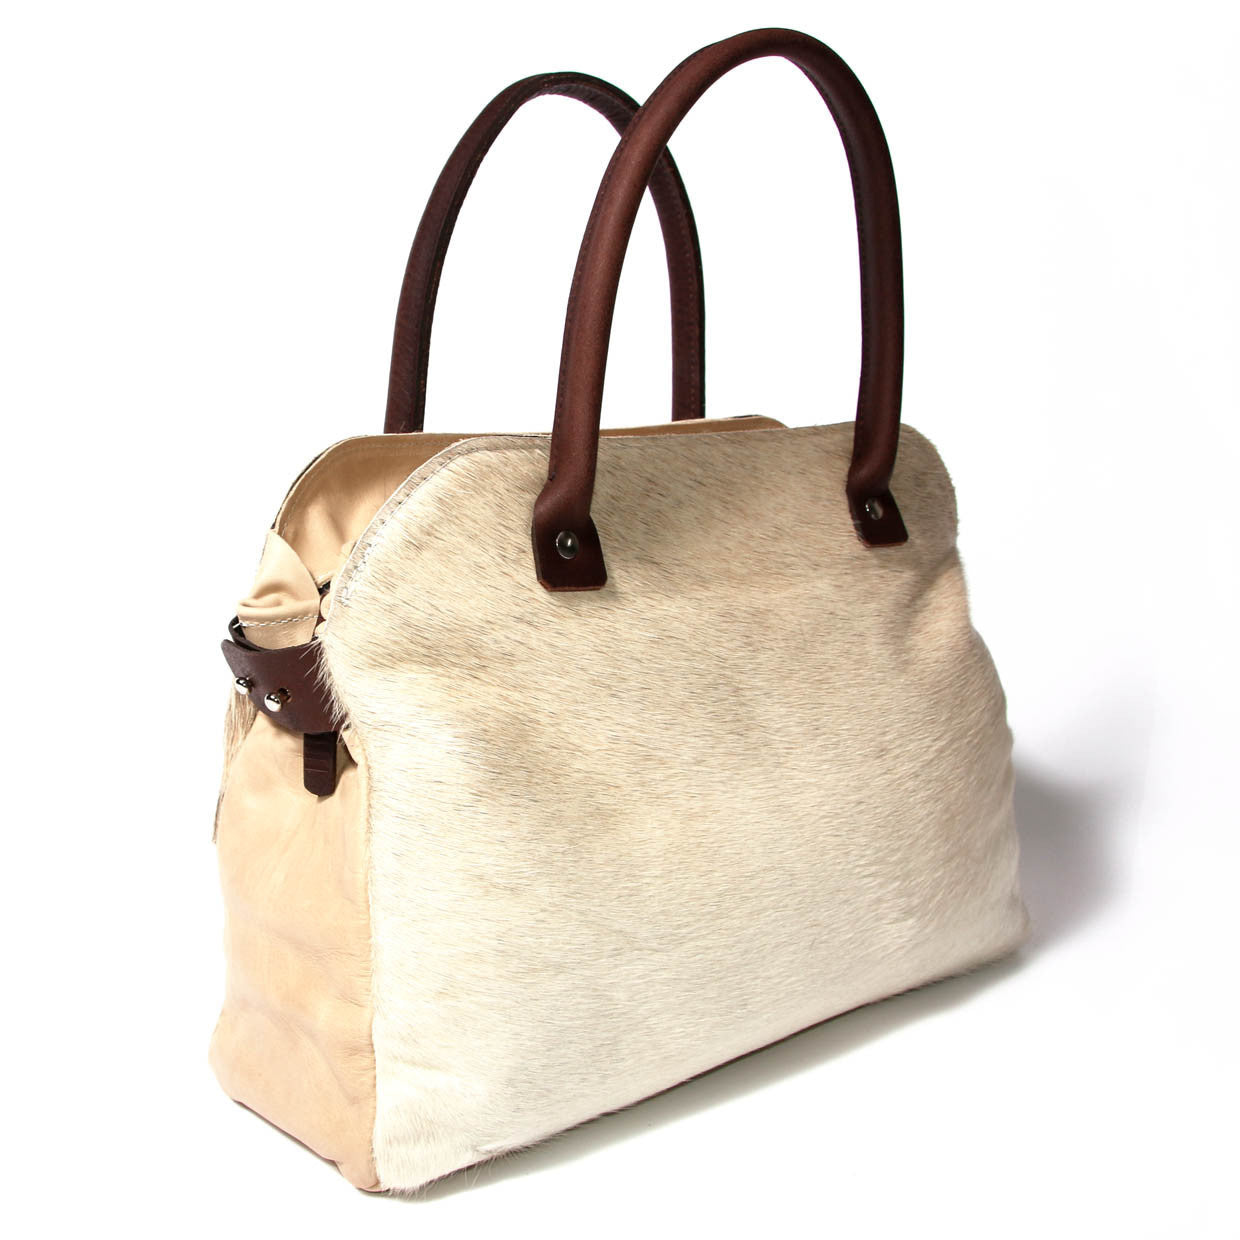 Mina Tote Beige Cowhide  OUT OF STOCK - PRE ORDER AVAILABLE